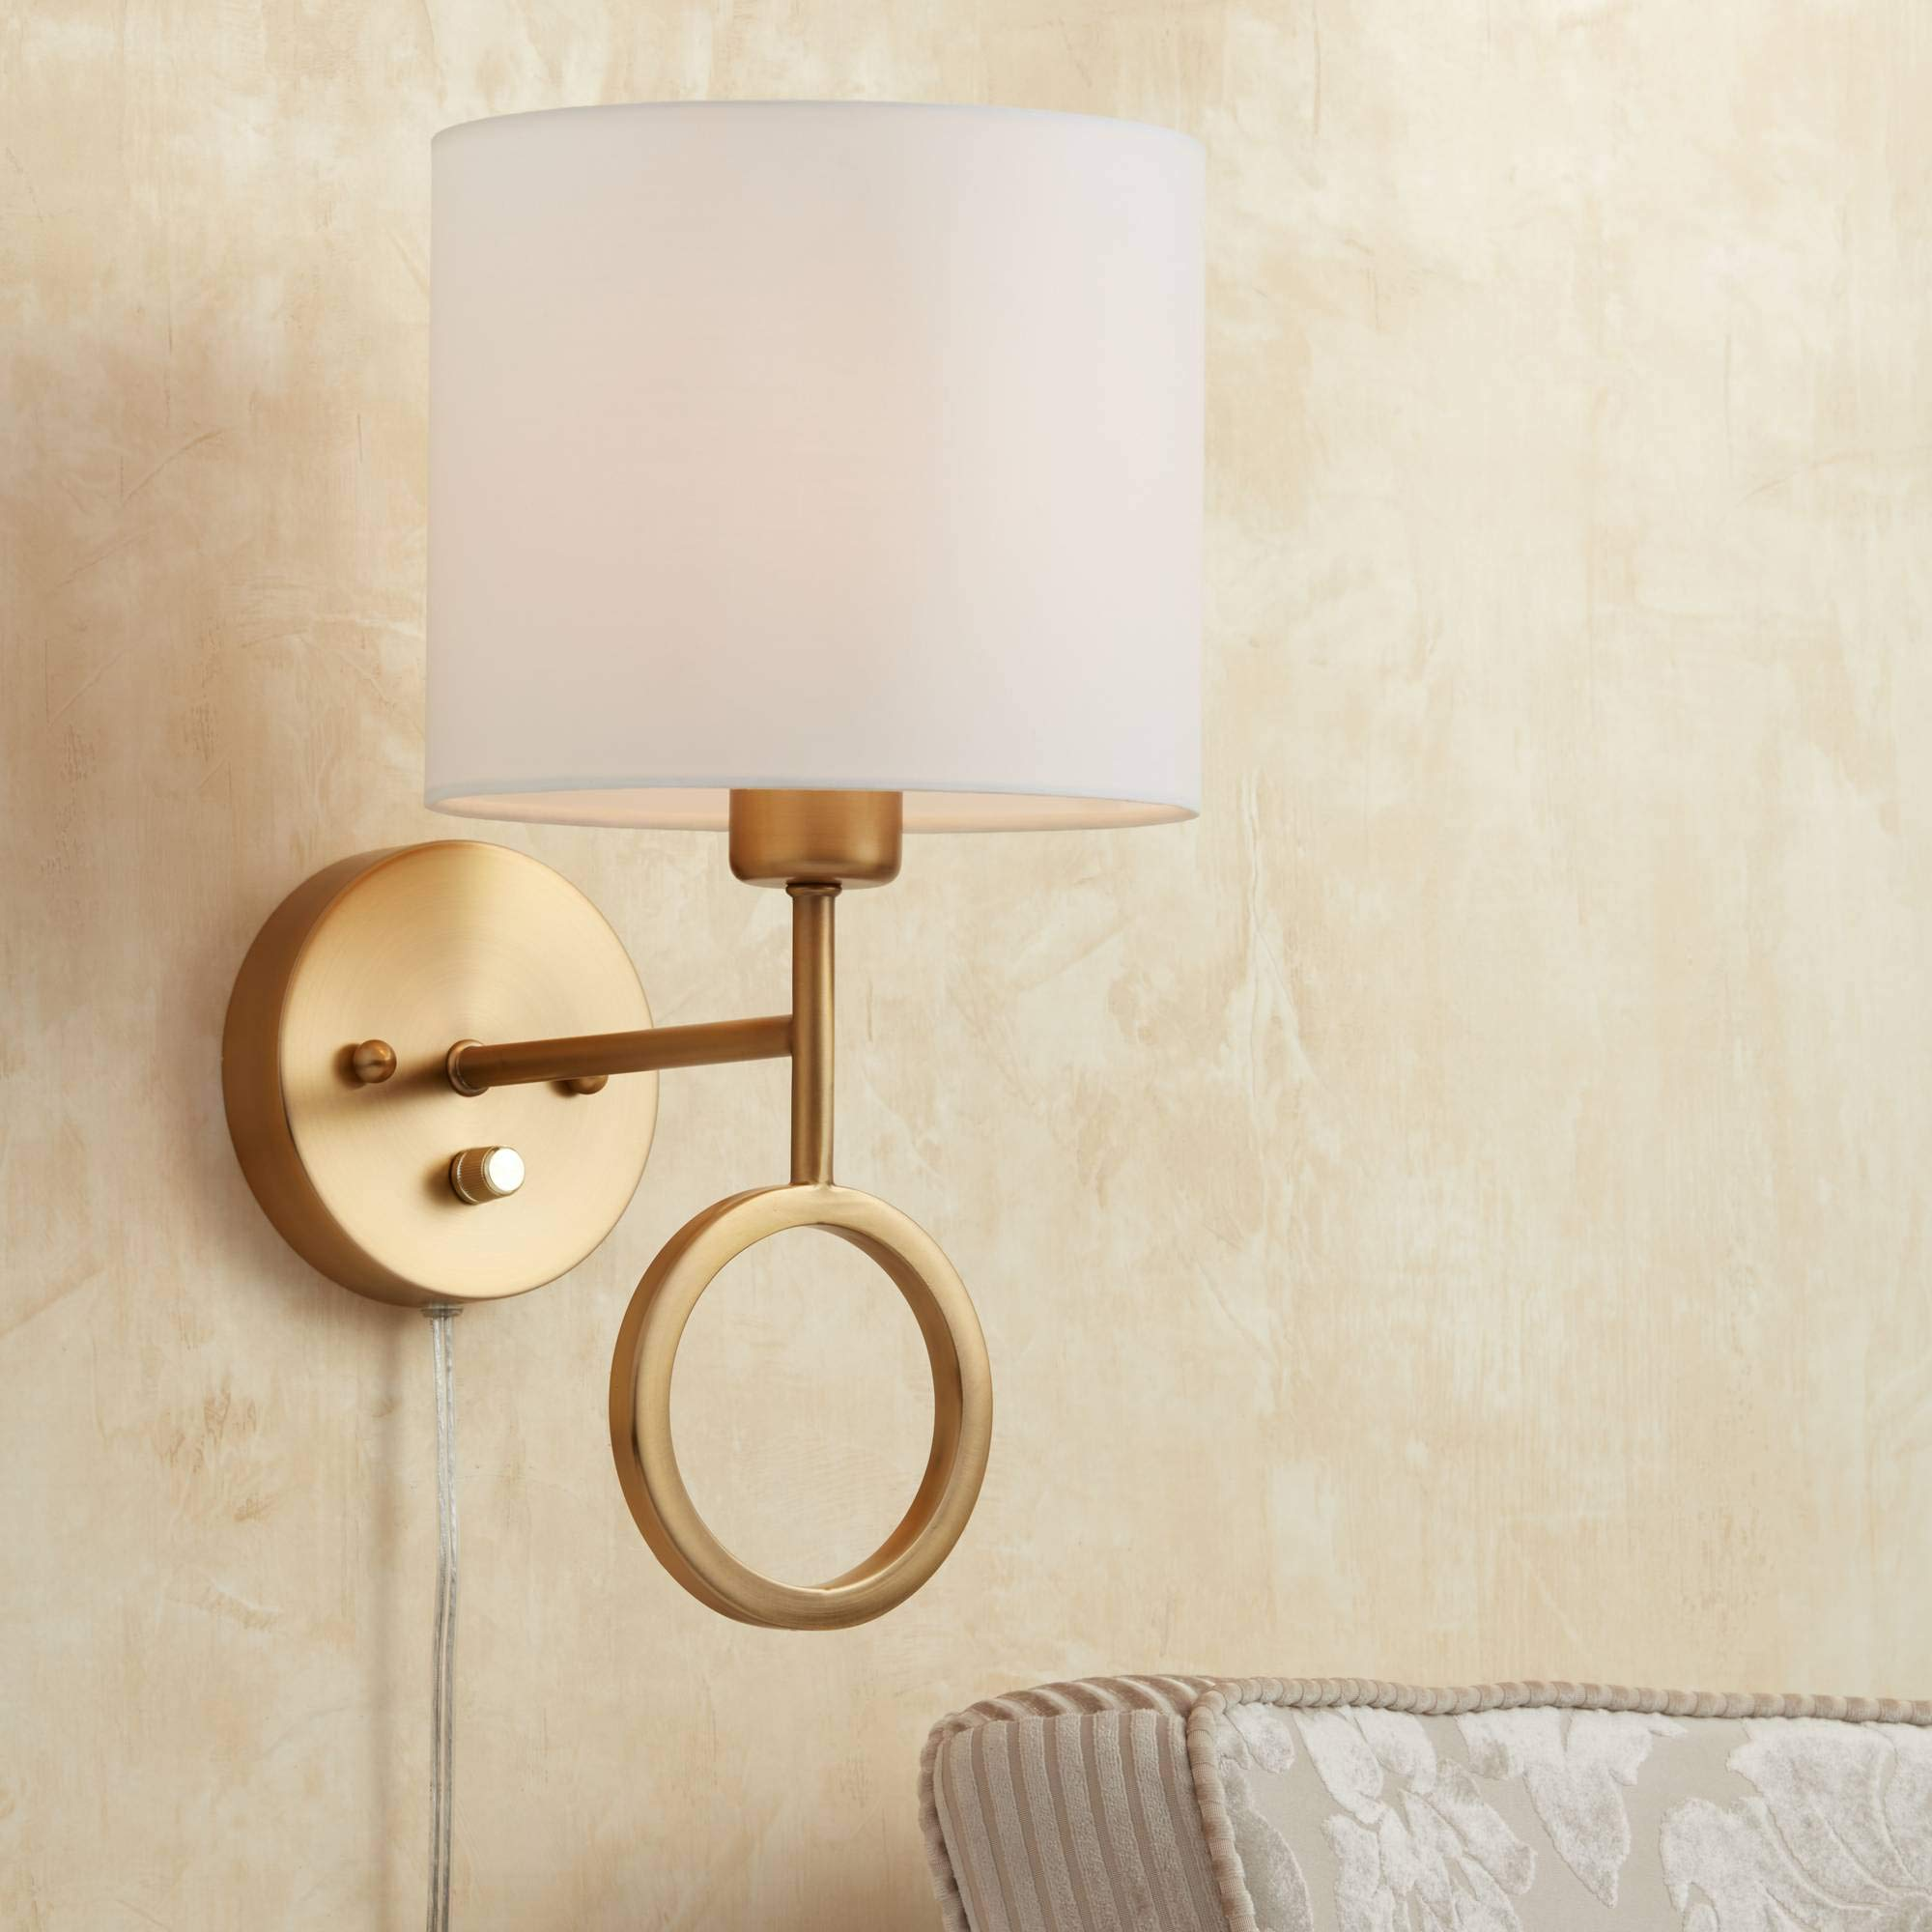 Amidon Wall Lamp Plug in Warm Brass Ring White Drum Shade for Bedroom Living Room Reading - 360 Lighting by 360 Lighting